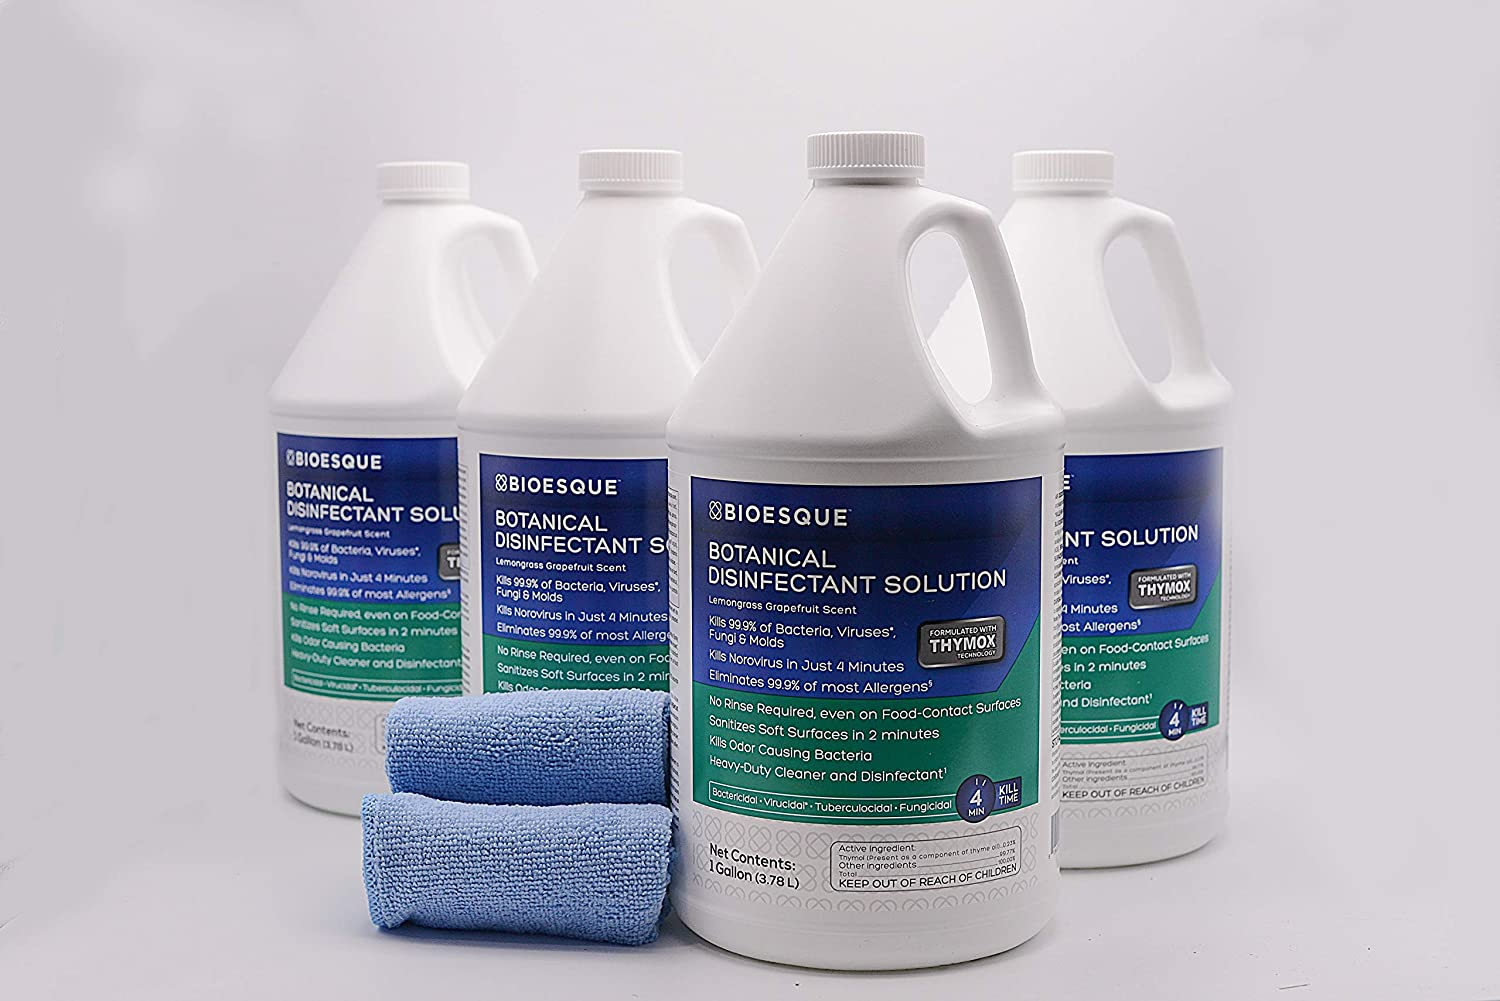 Bioesque Botanical Disinfectant Solution - I of Max 72% OFF Many popular brands Case Gallons 4